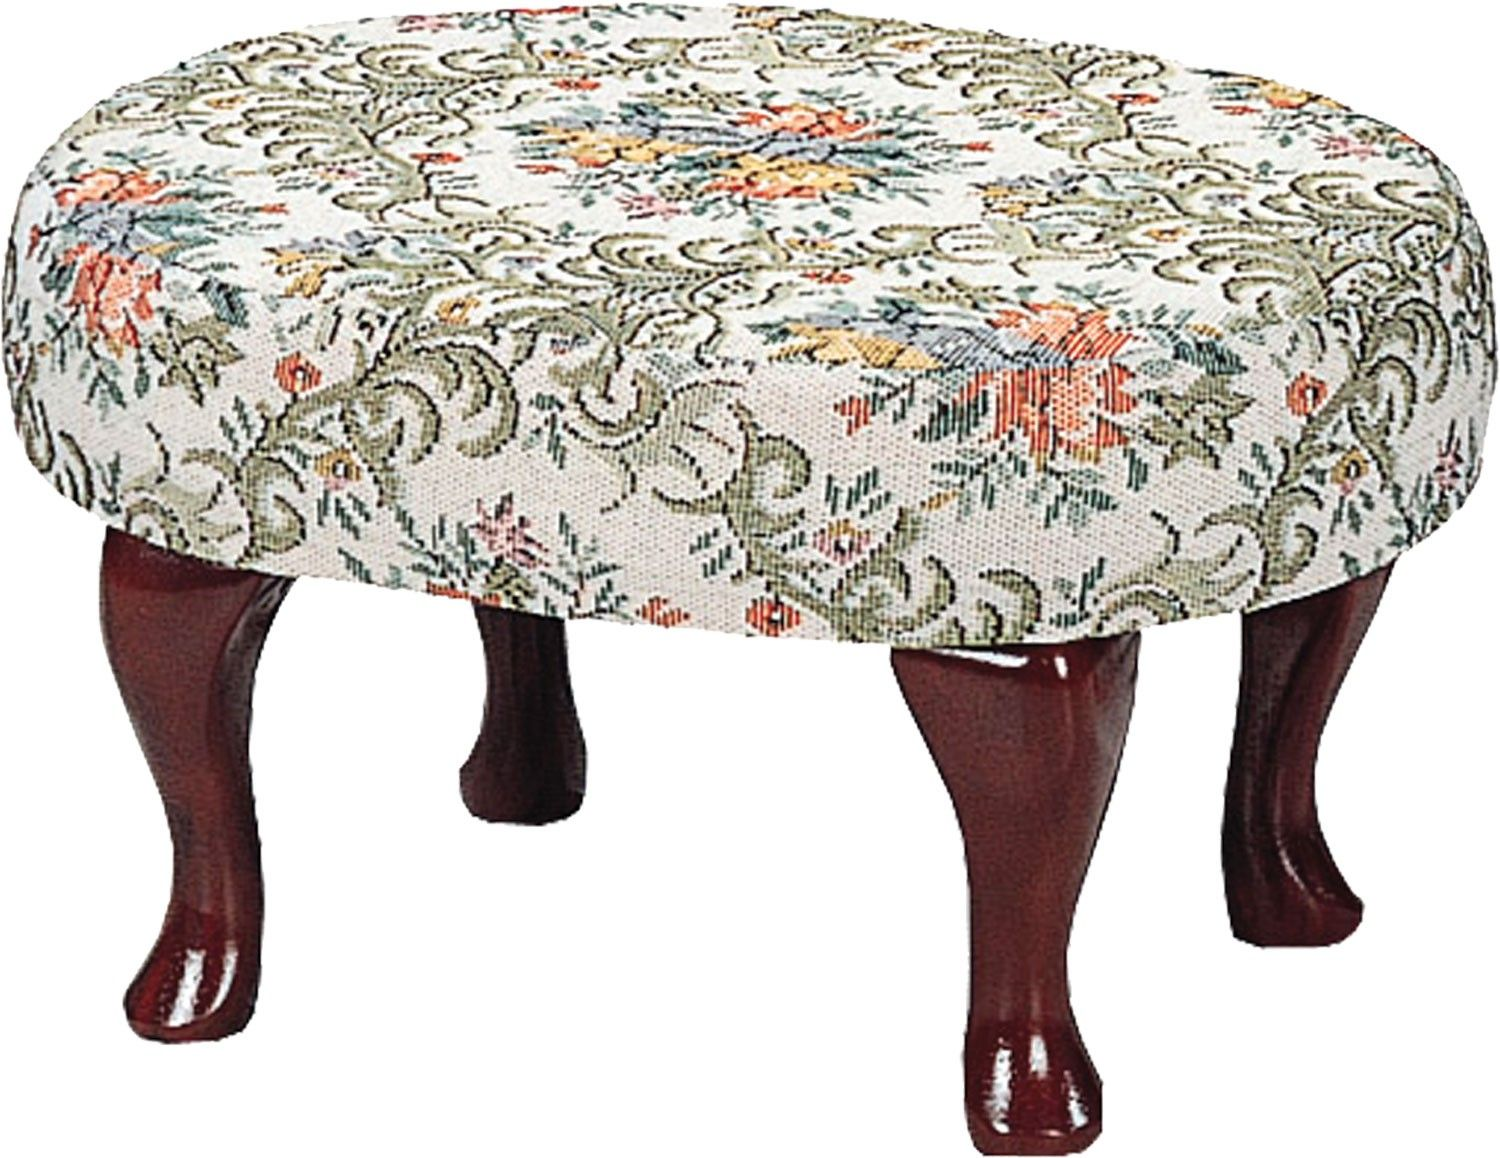 Cherry Upholstered Foot Stool withShapely Legs | Coaster Furniture ...